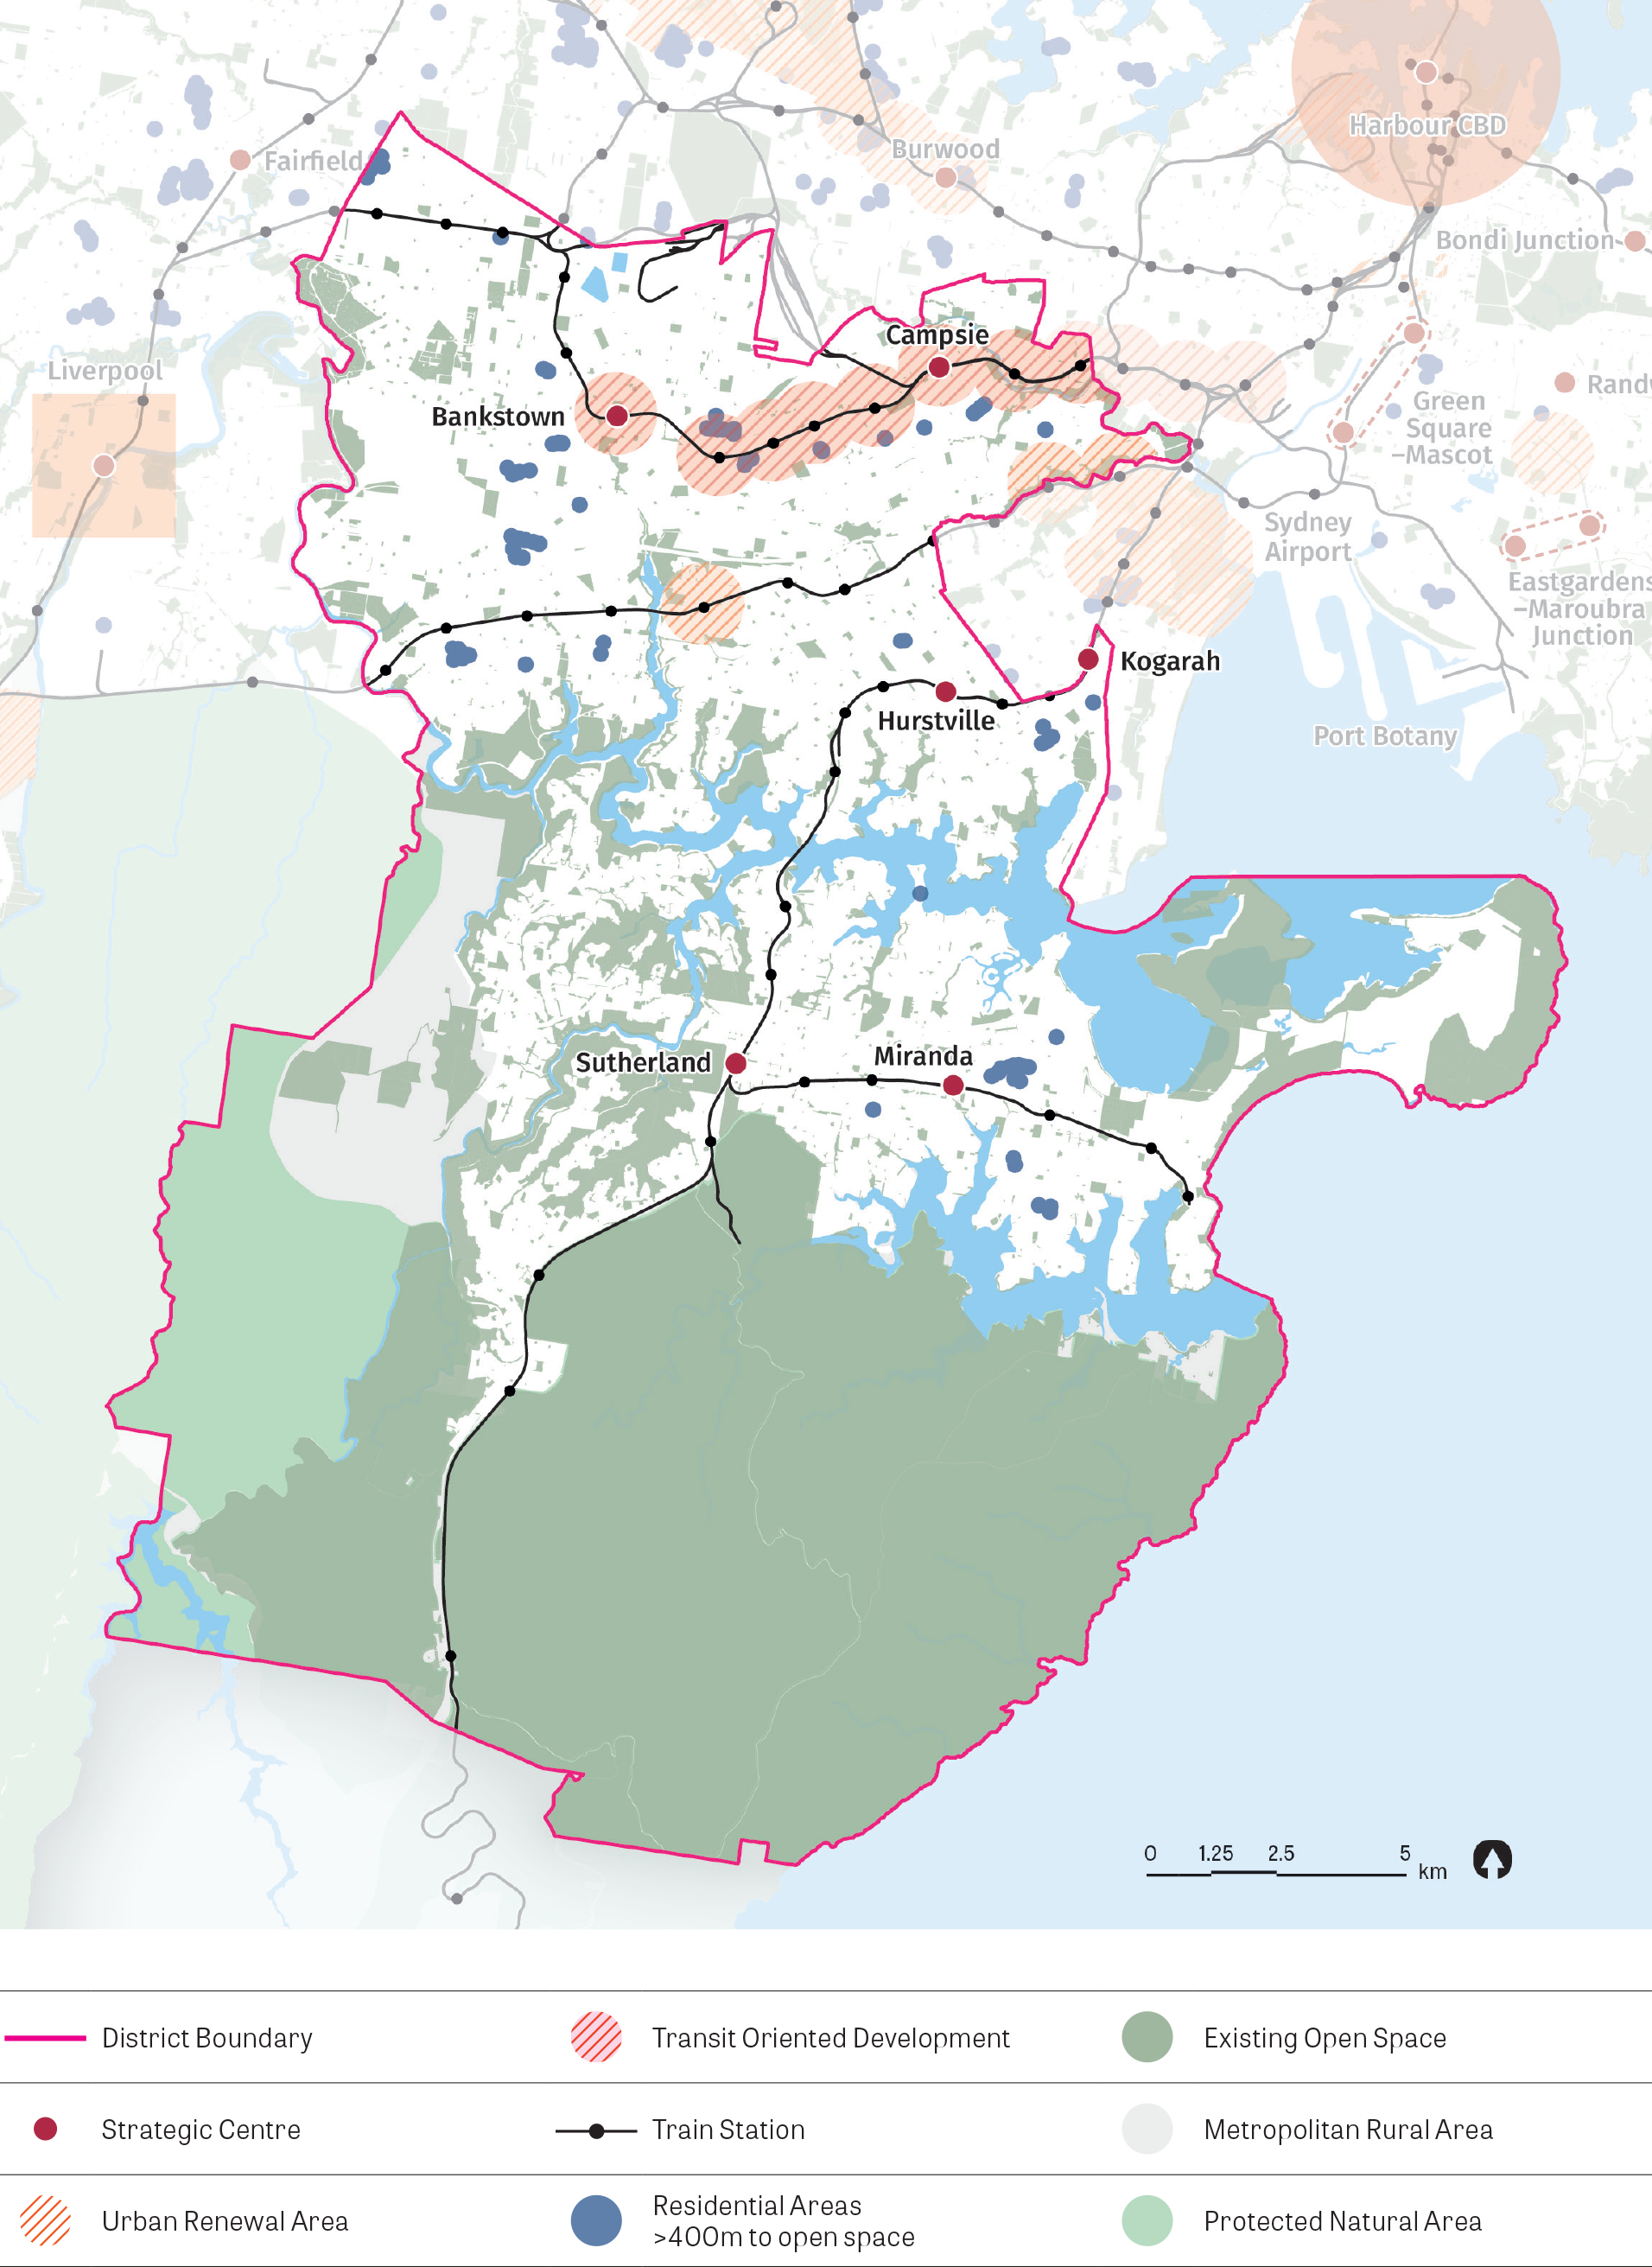 Map showing residential areas greater than 400m to open space, strategic centres, infill priority precinct/urban renewal corridors, transit orientated development, train stations, existing open space, metropolitan rural areas and protected natural areas